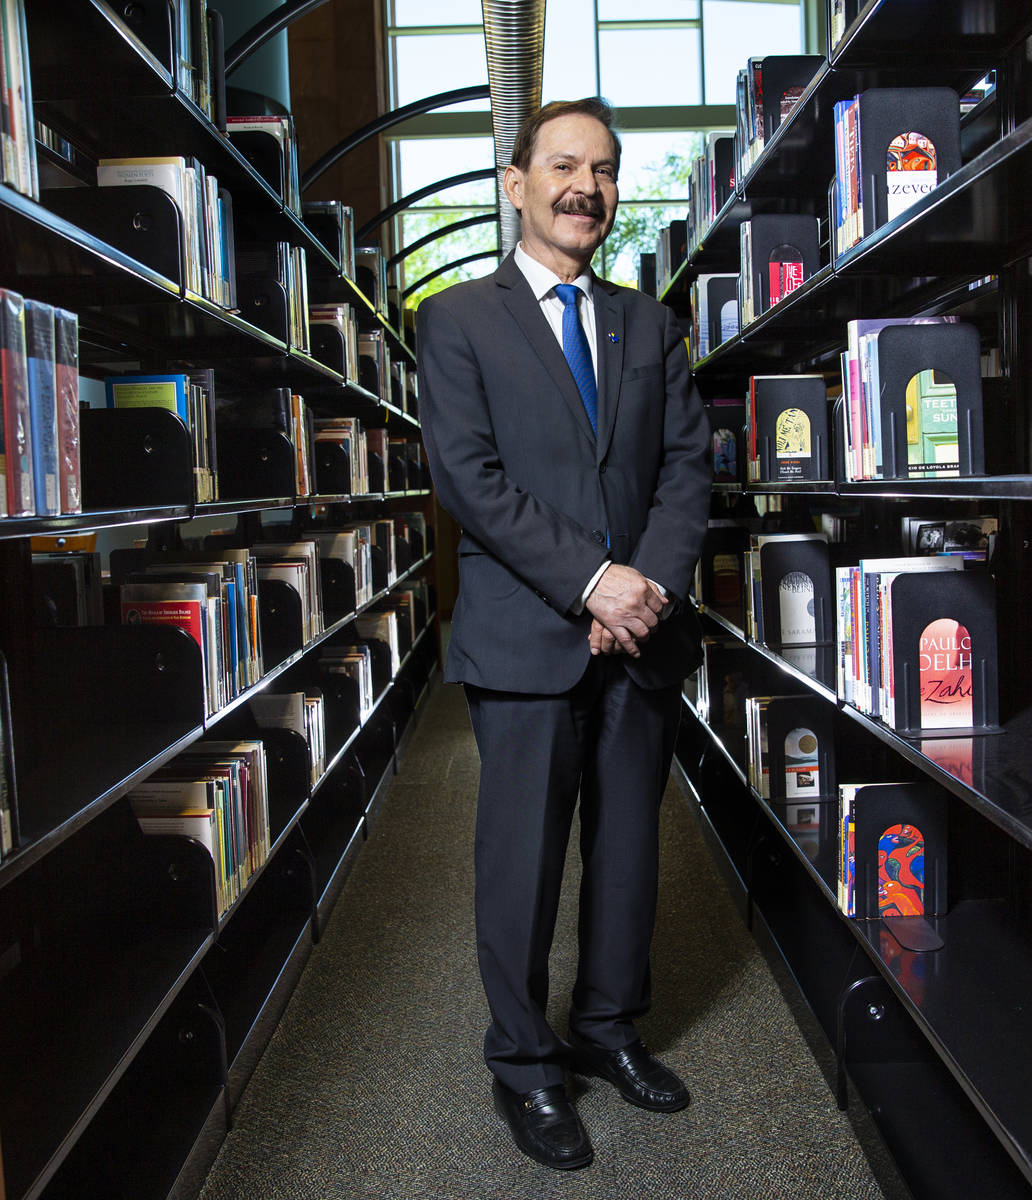 Dr. Federico Zaragoza, president of the College of Southern Nevada, poses for a portrait in the ...